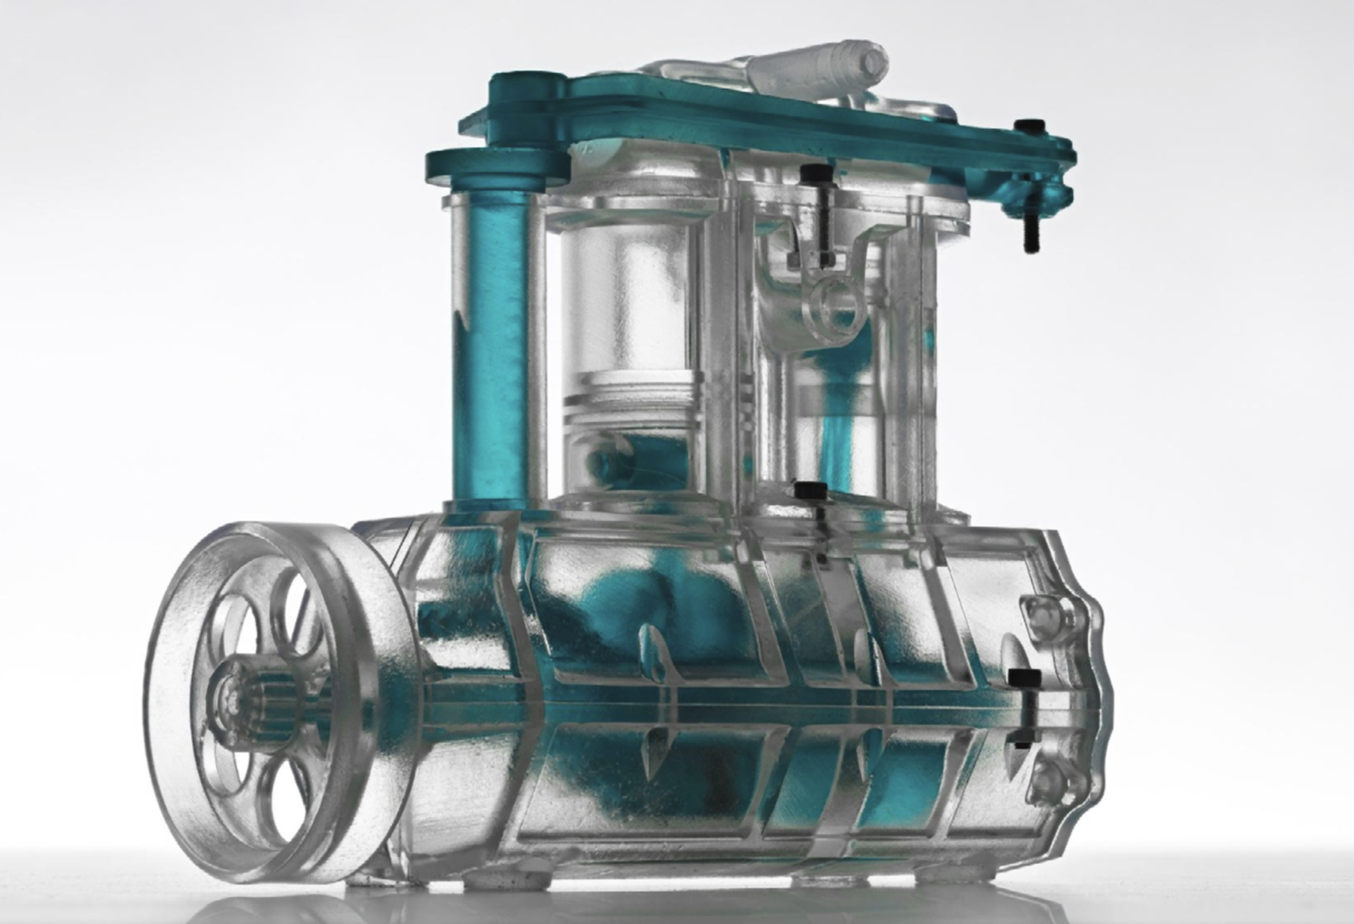 White Paper: Engineering Fit - Formlabs